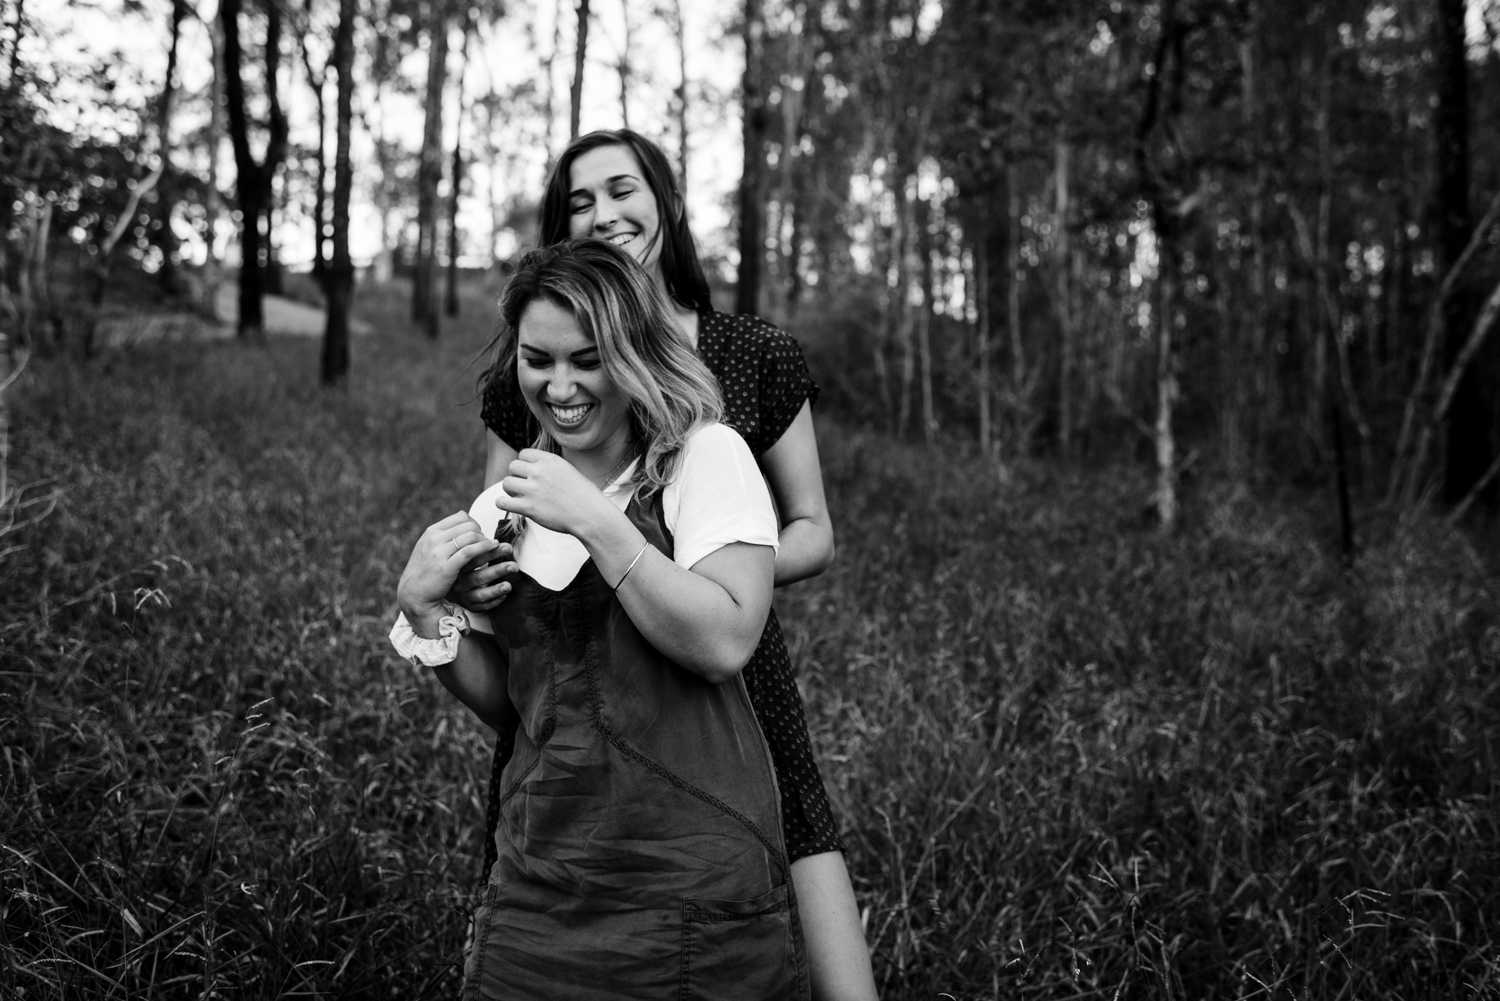 Brisbane Same-Sex Wedding Photographer | Engagement-Elopement Photography-31.jpg